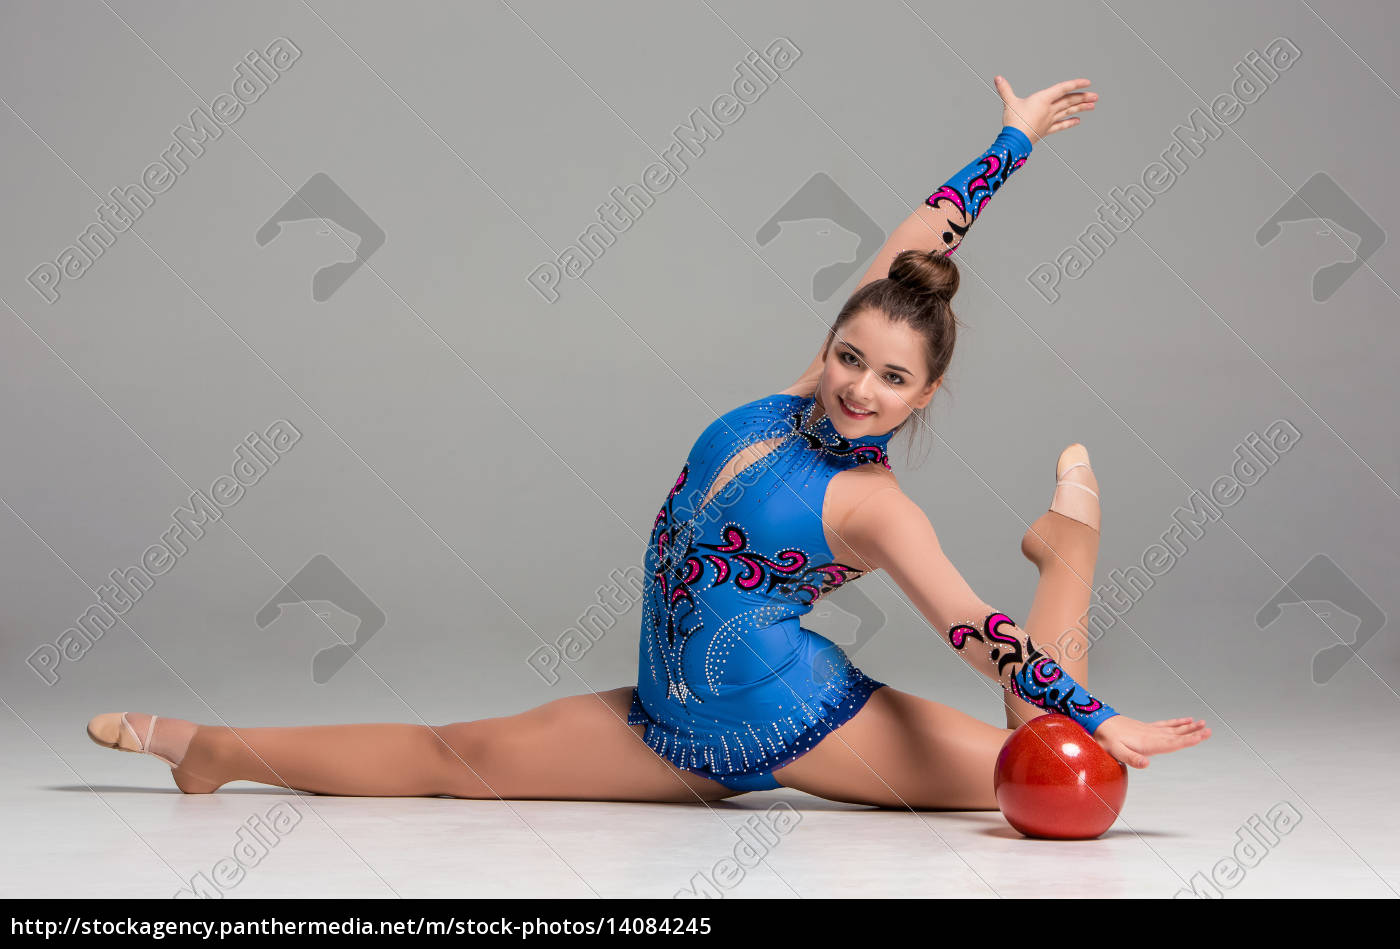 teenager, doing, gymnastics, exercises, with, red - 14084245